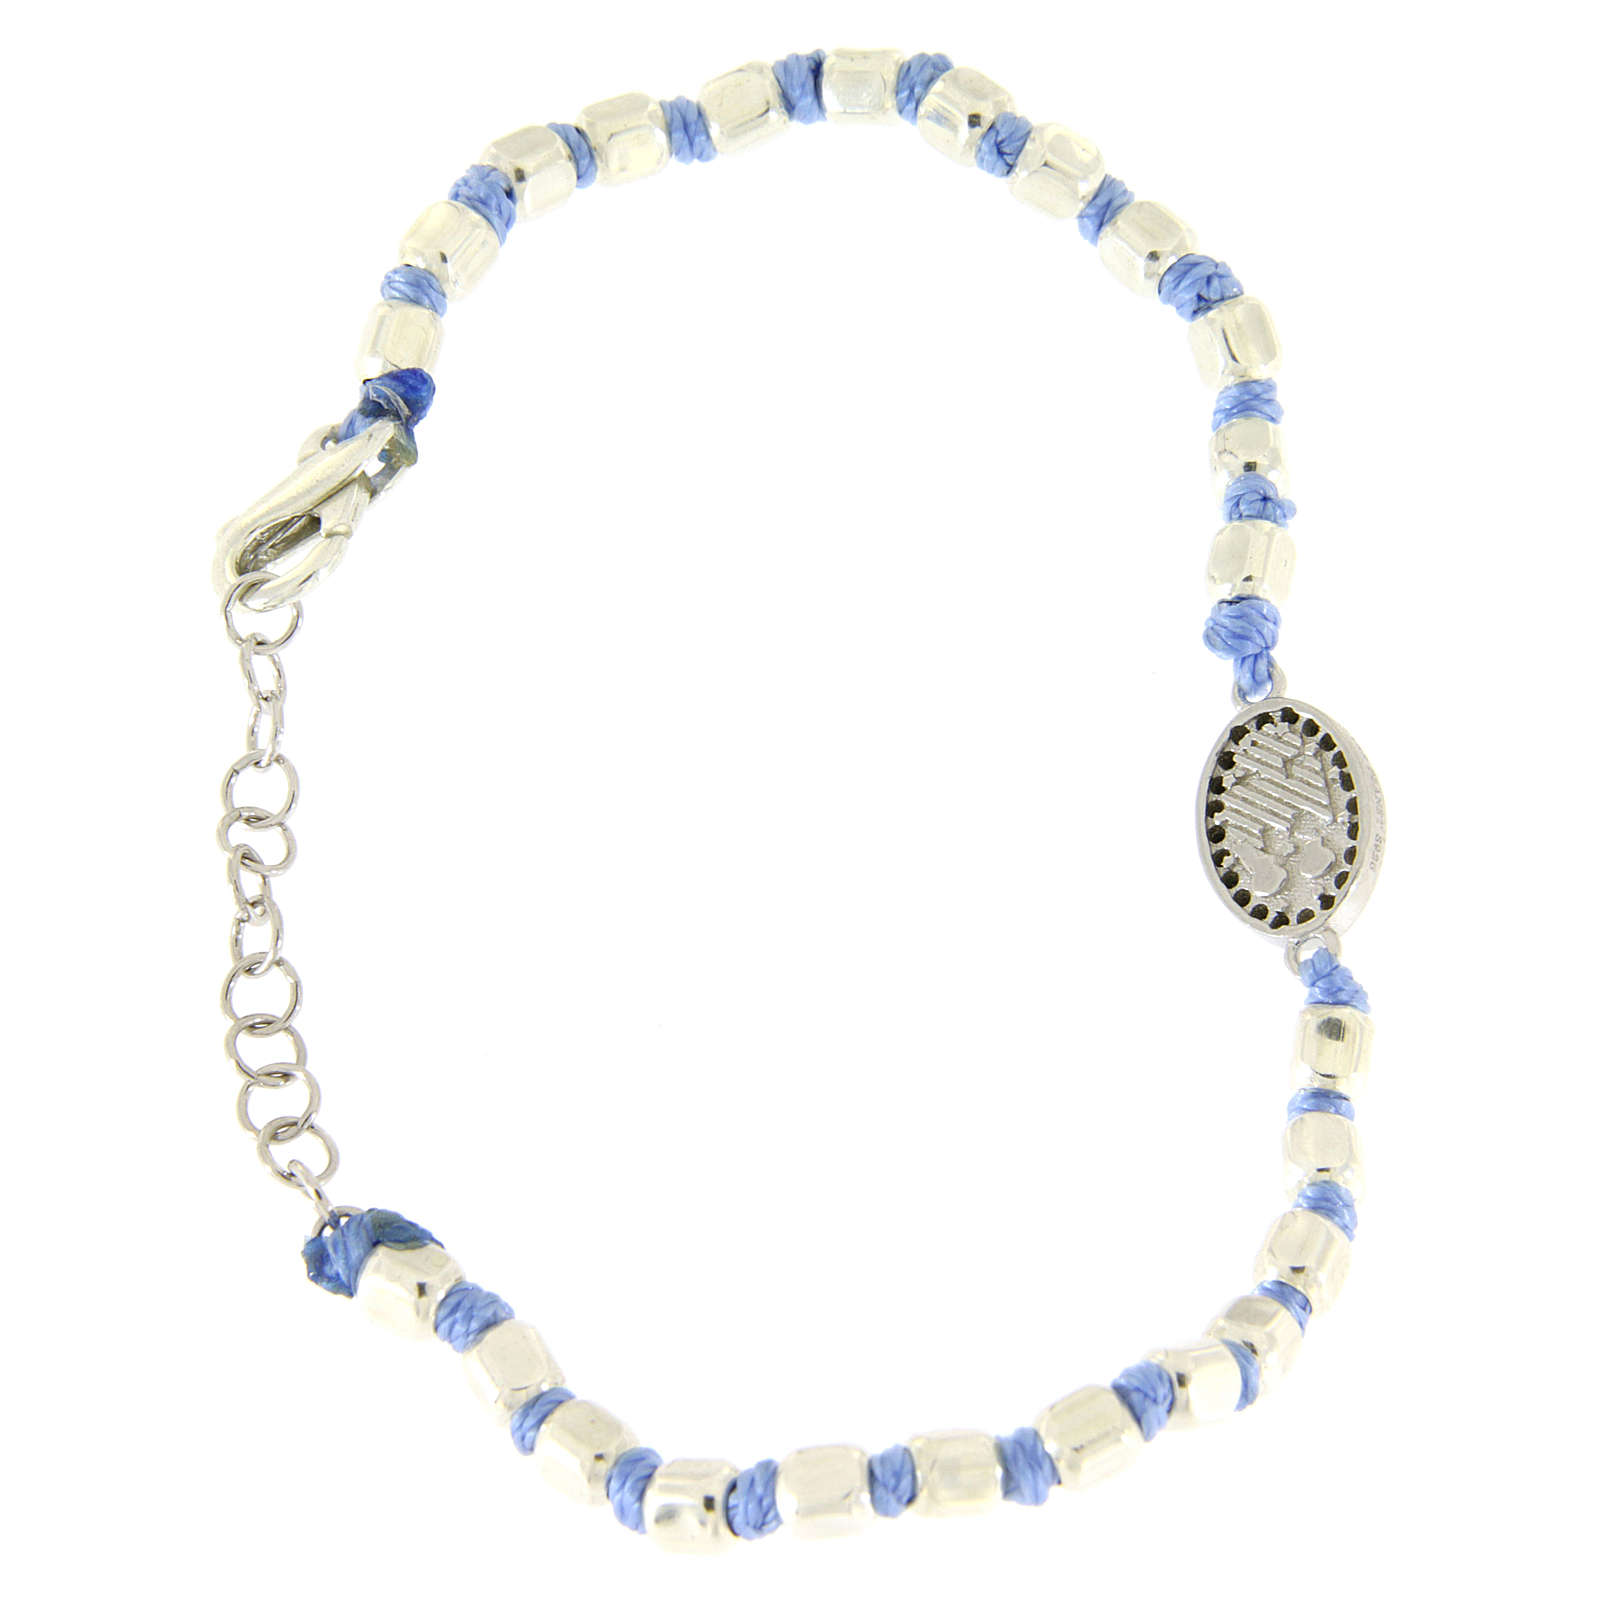 Bracelet with 2 mm multifaceted beads light blue cord and Saint Rita medal with black zircons 4